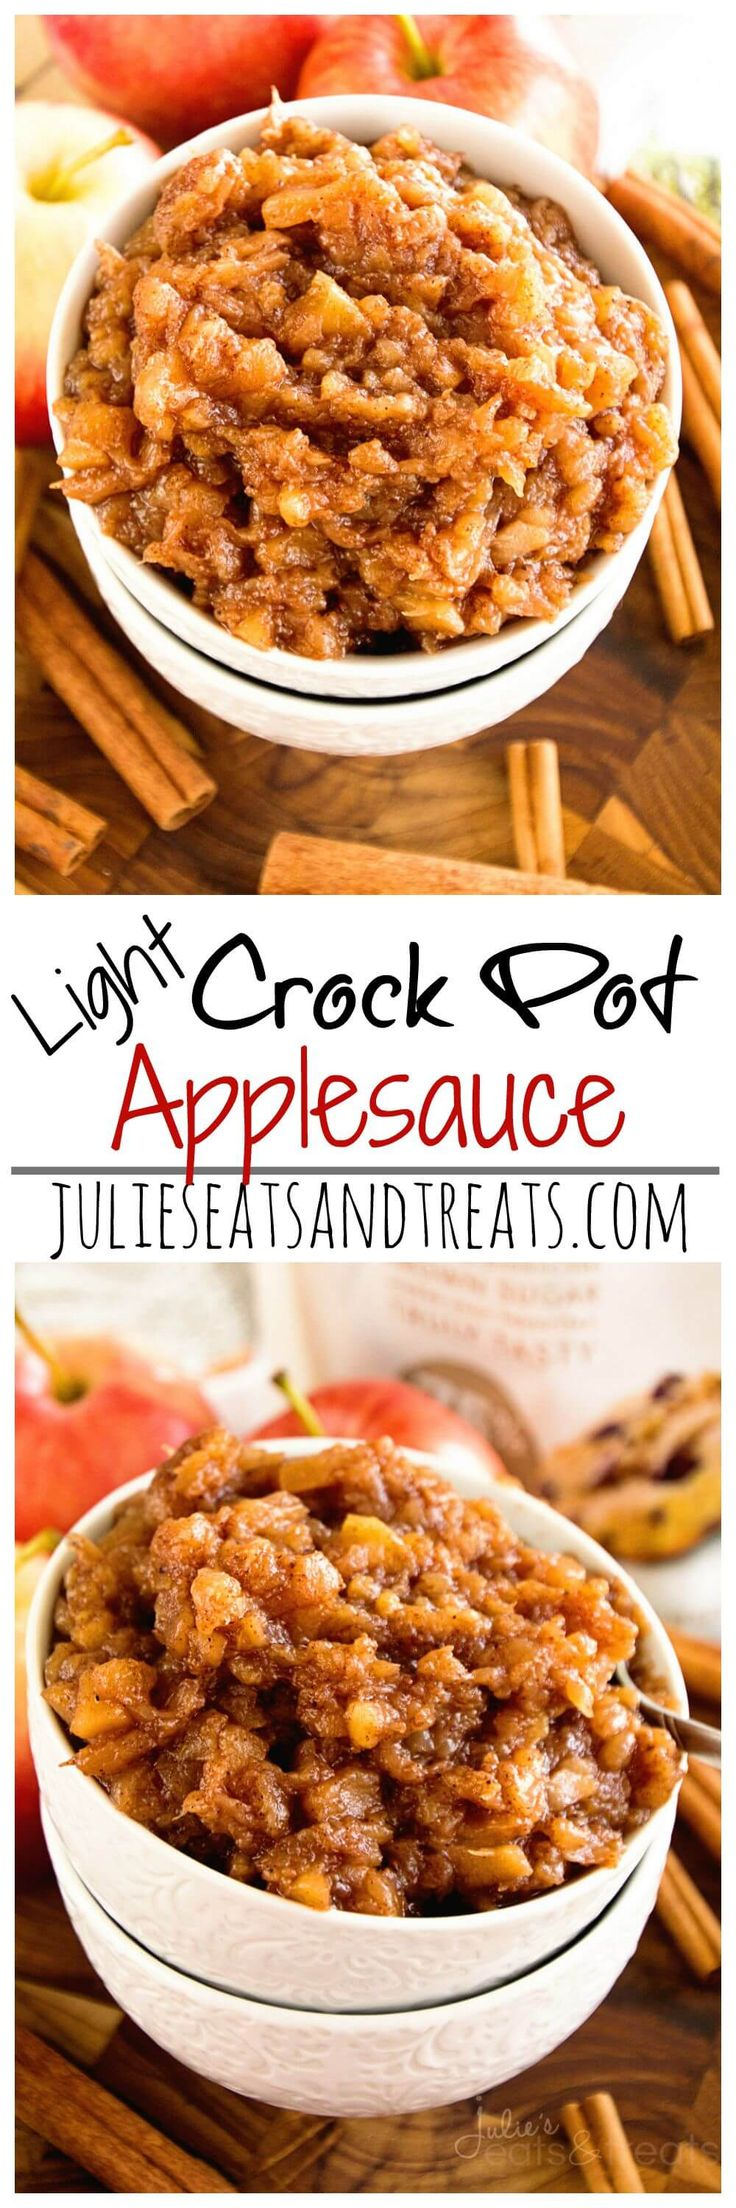 Light Crock Pot Applesauce Recipe ~ Delicious, Easy Applesauce that is slow cooked! Loaded with all the flavors of fall! ~ http://www.julieseatsandtreats.com